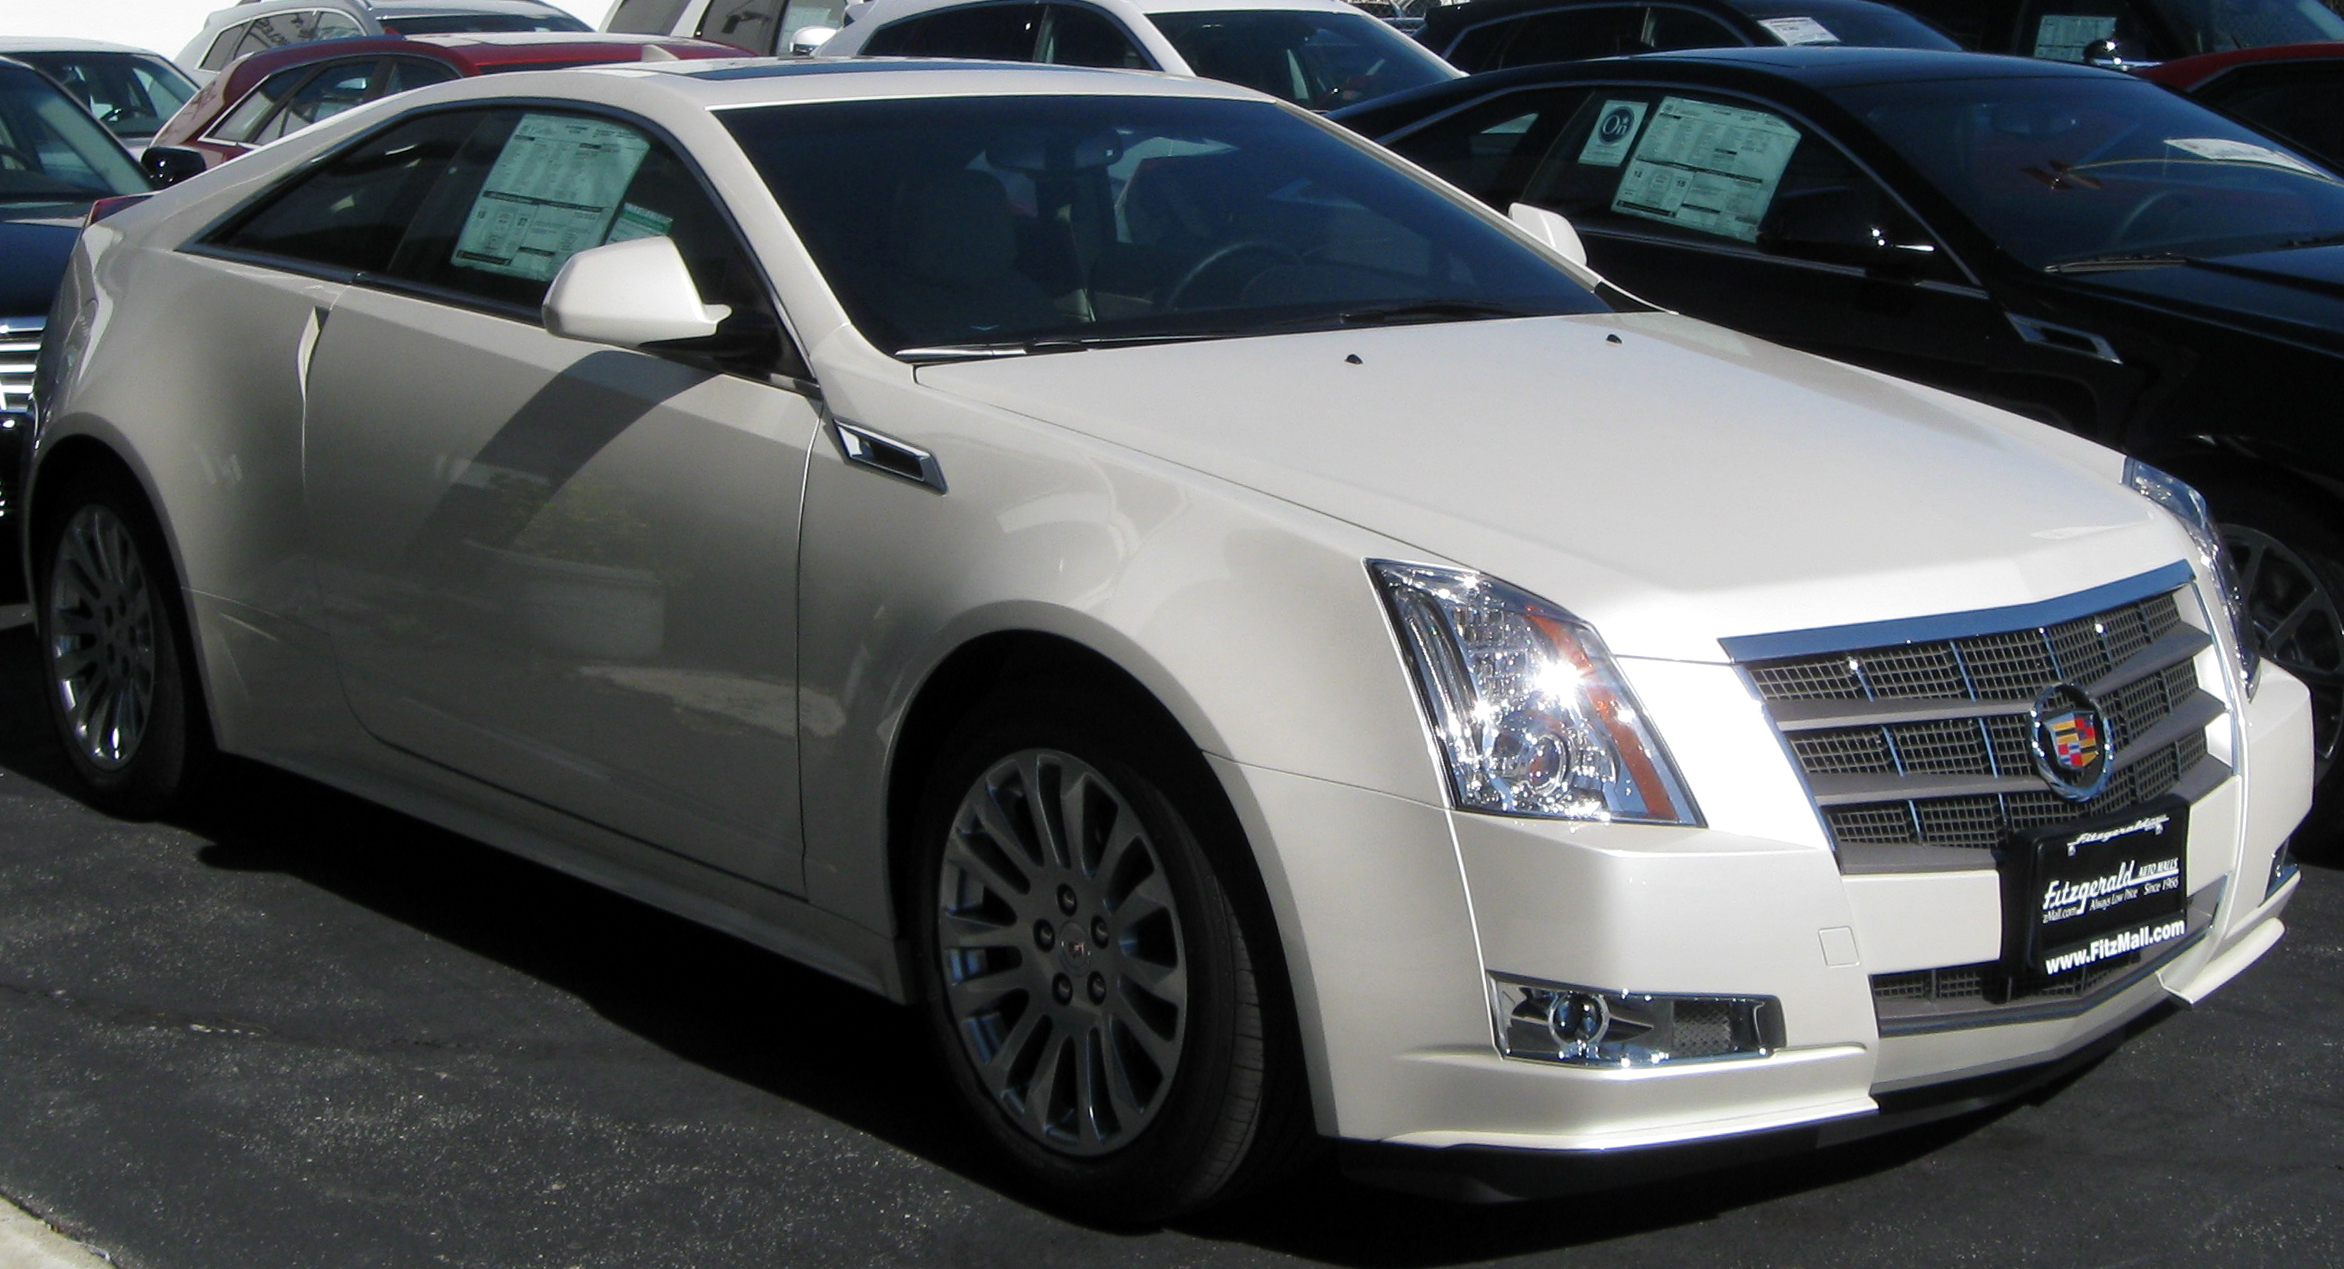 File 2011 Cadillac Cts Coupe 10 22 2010 1 Jpg